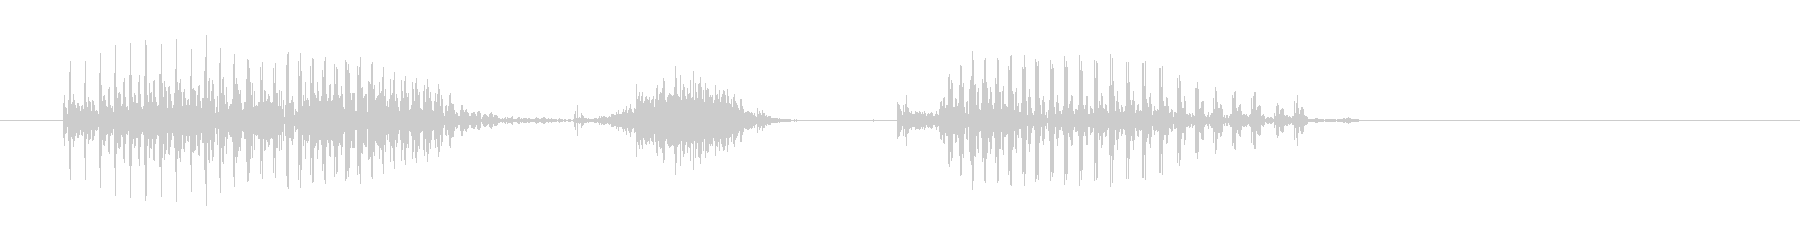 Aichi prefecture's unreproduced waveform